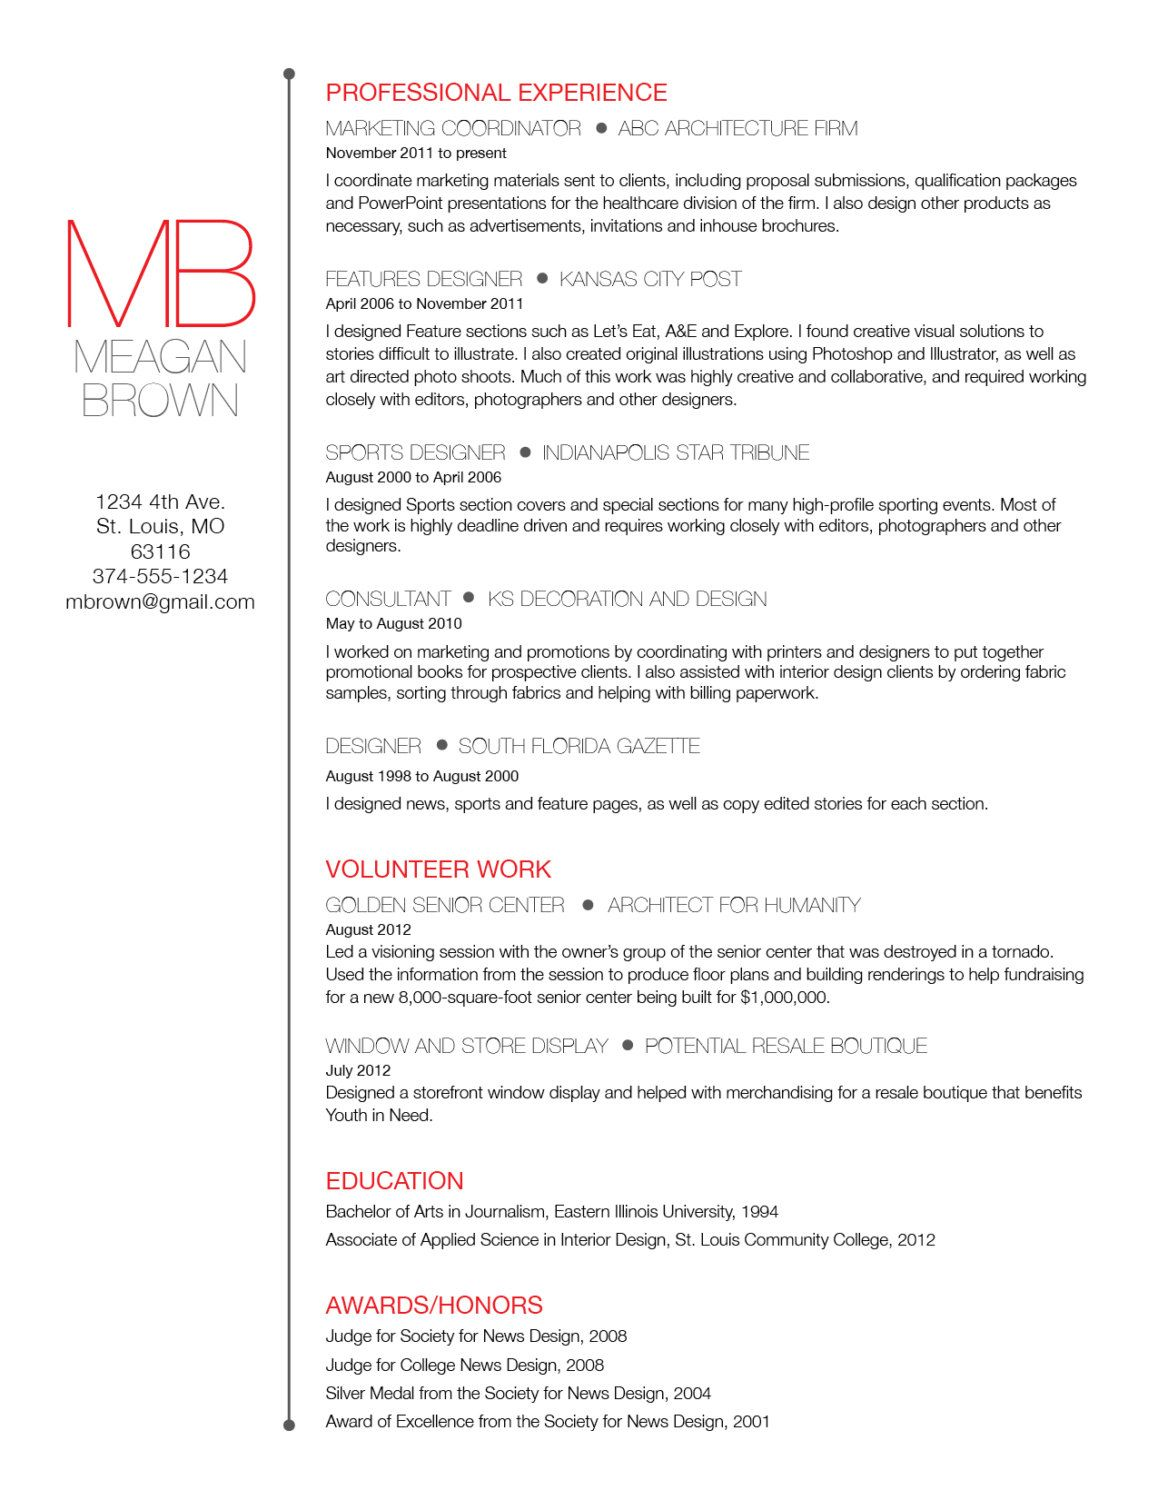 Custom resume and cover letter template - Big initials. $45.00, via ...